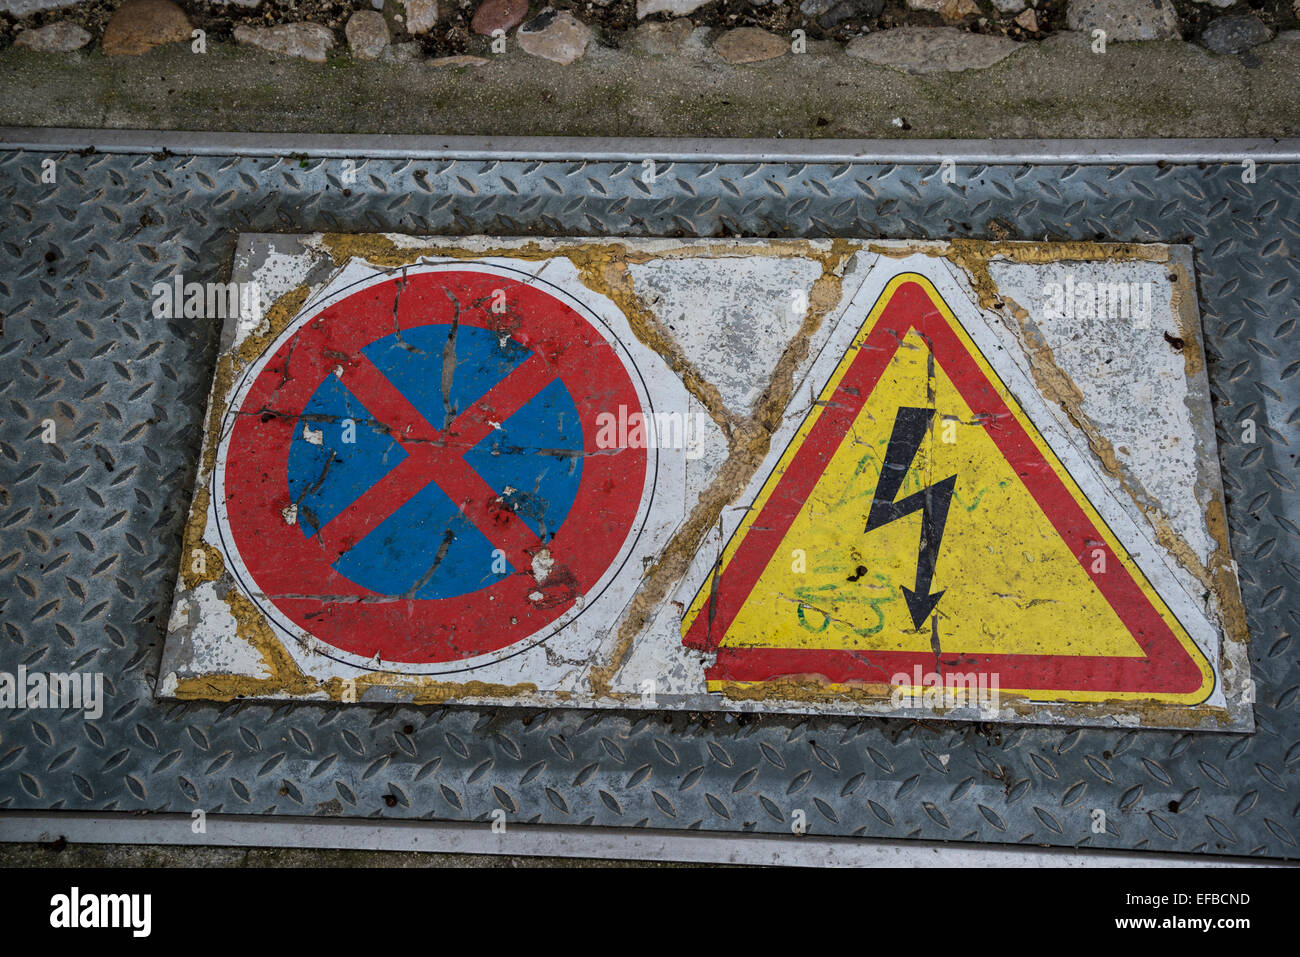 Road danger signs, no entry, electricity - Stock Image